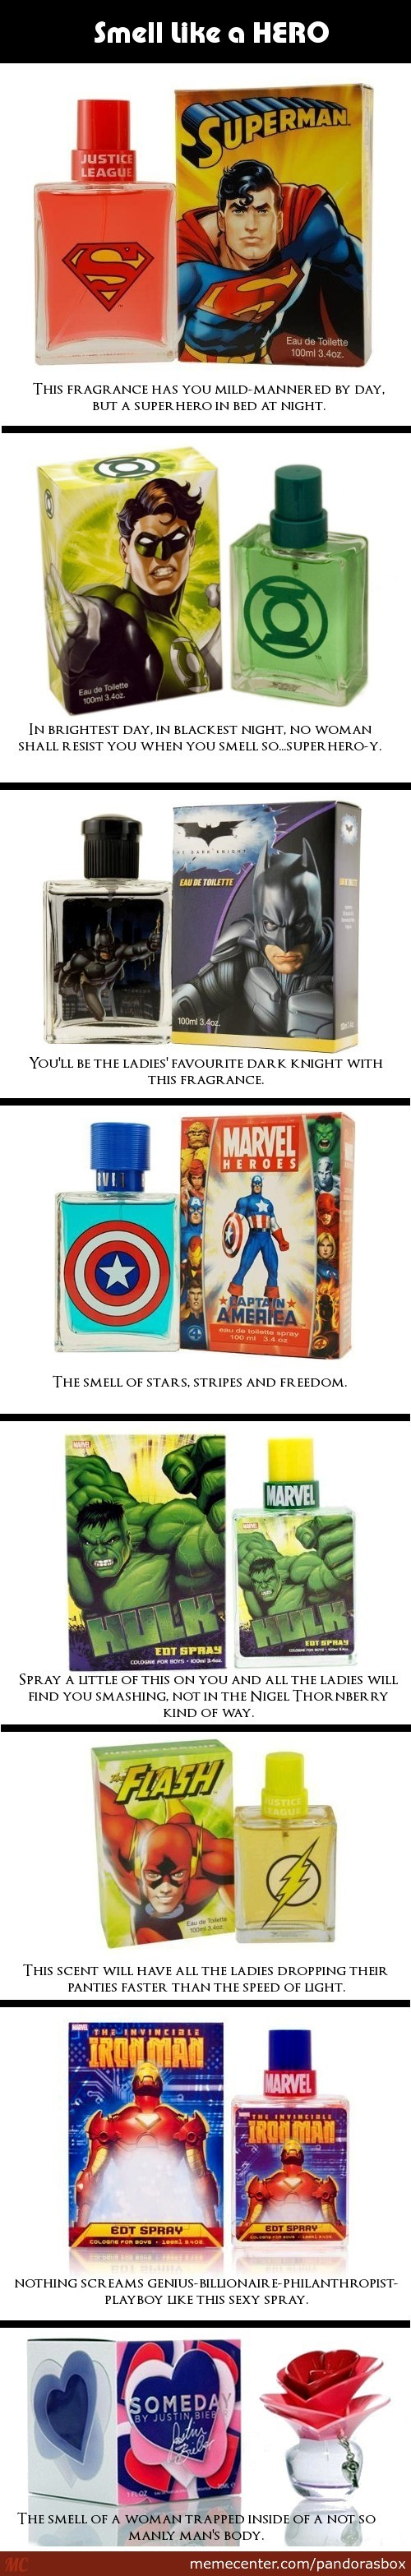 Smell Like A Hero.